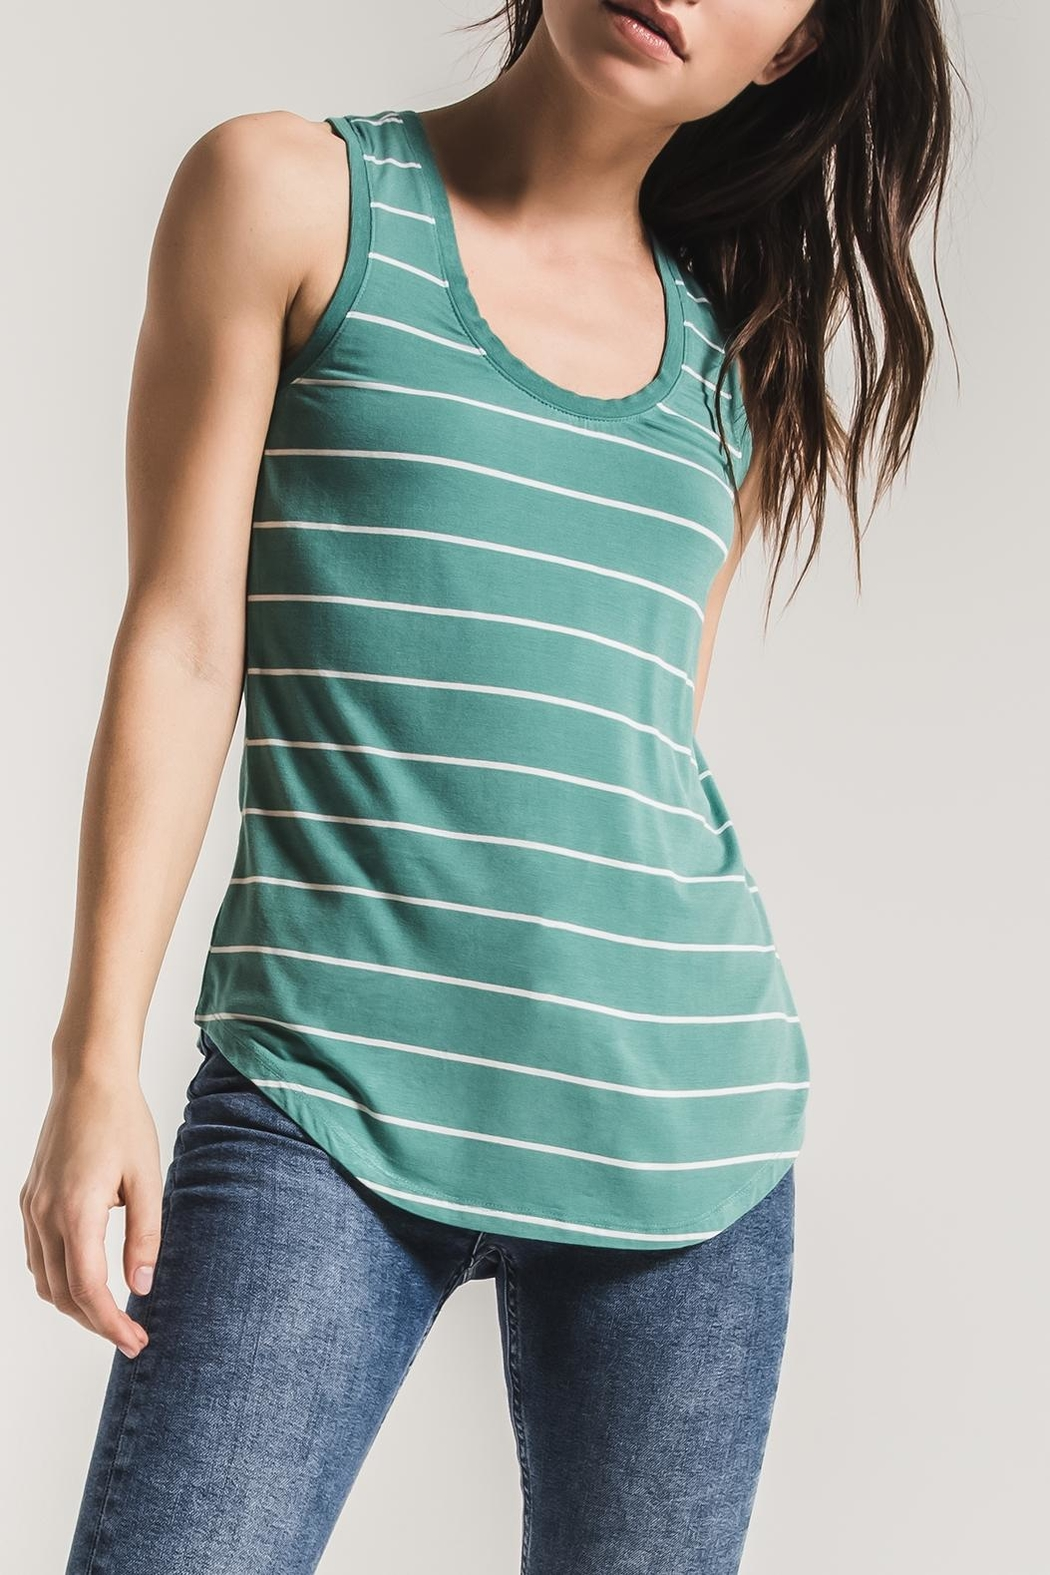 z supply Pencil Striped Tank - Front Cropped Image